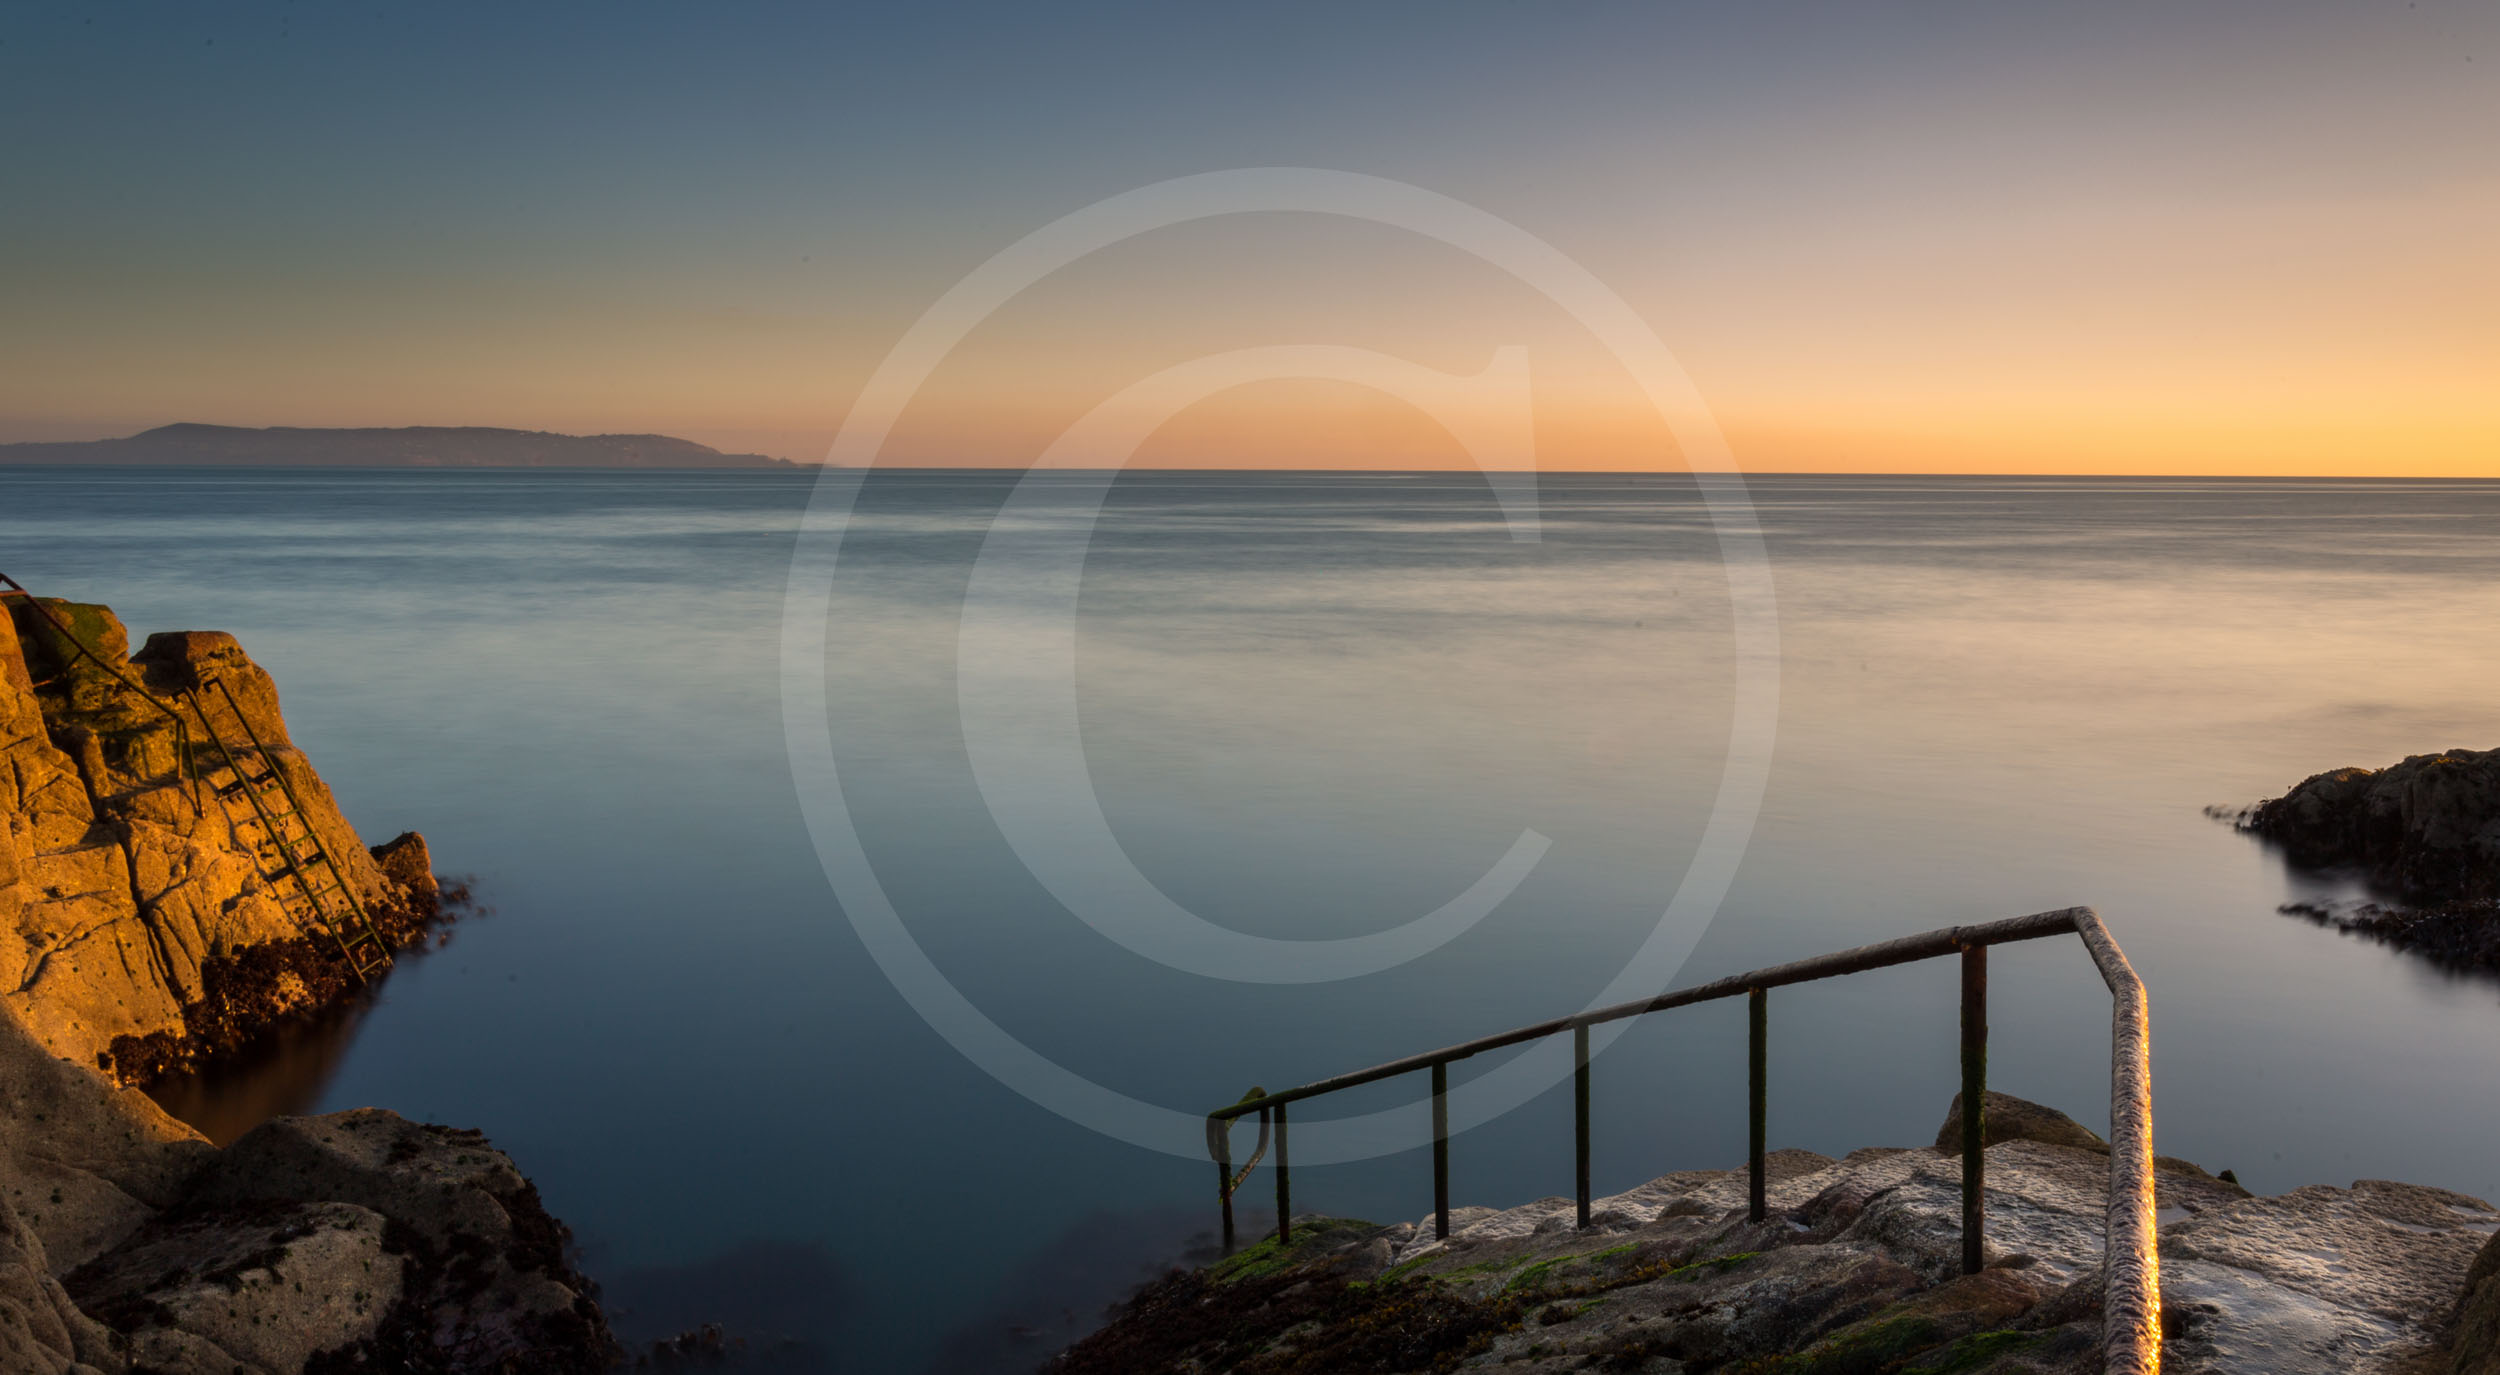 Sunrise at the Forty Foot, Dublin